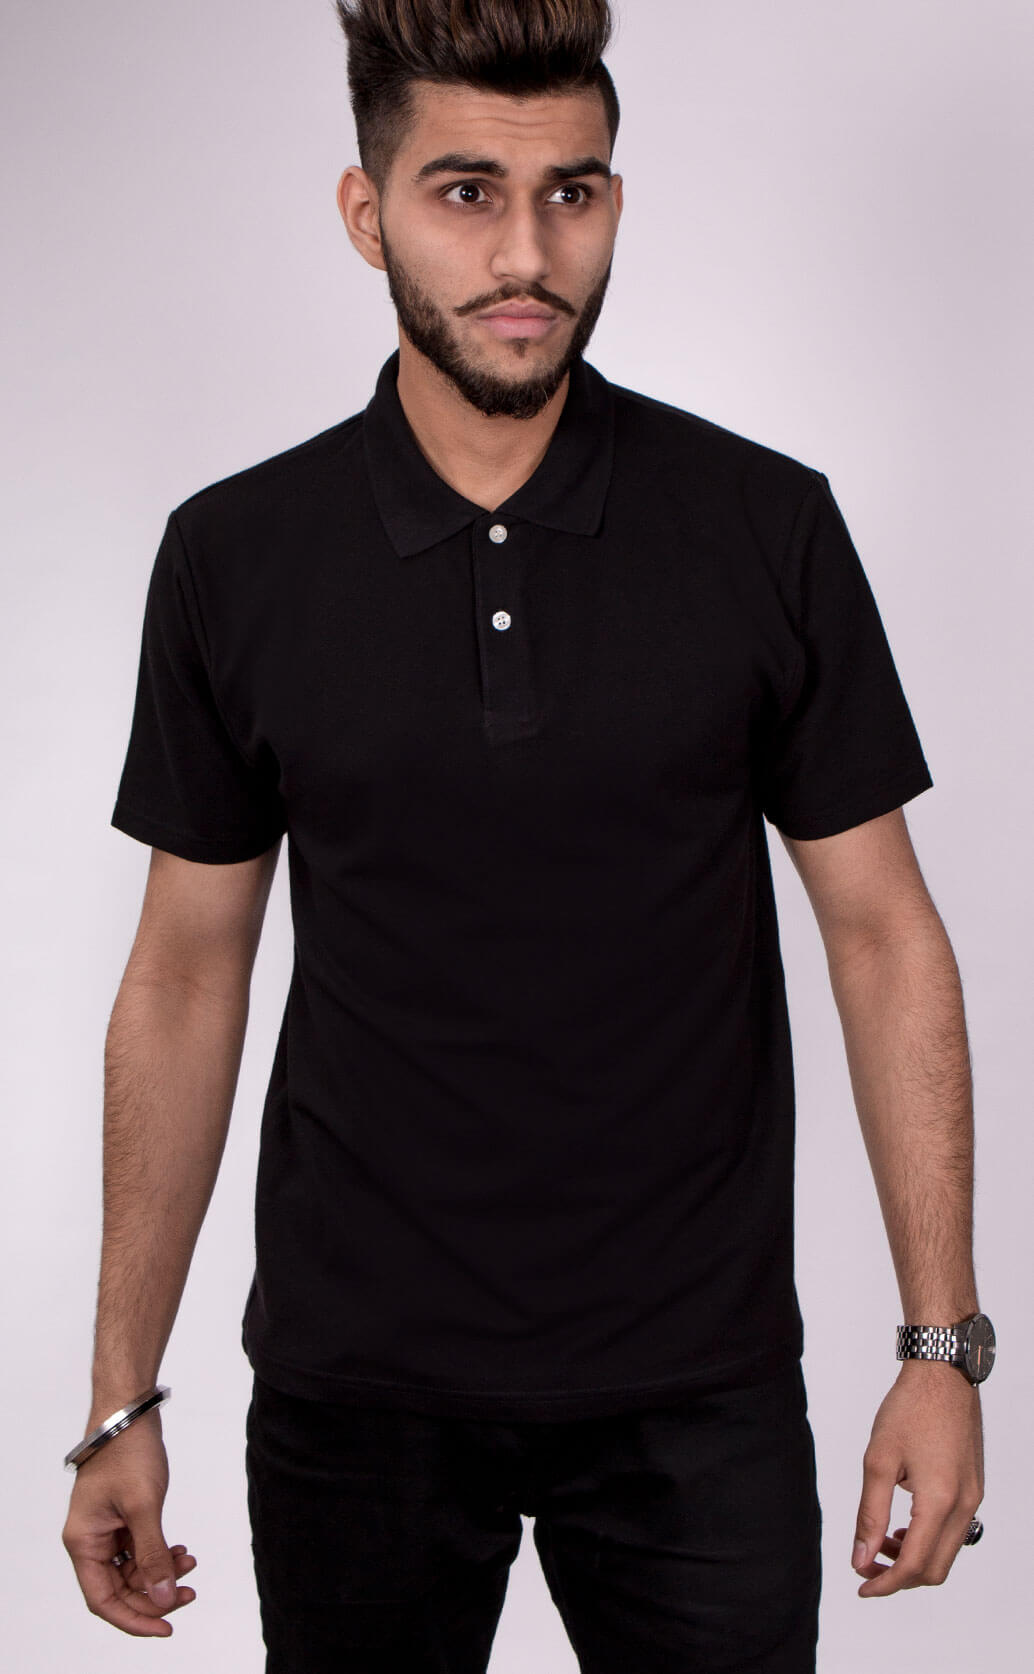 Size guide image for Mens Polo shirt type. Model is dressed in black